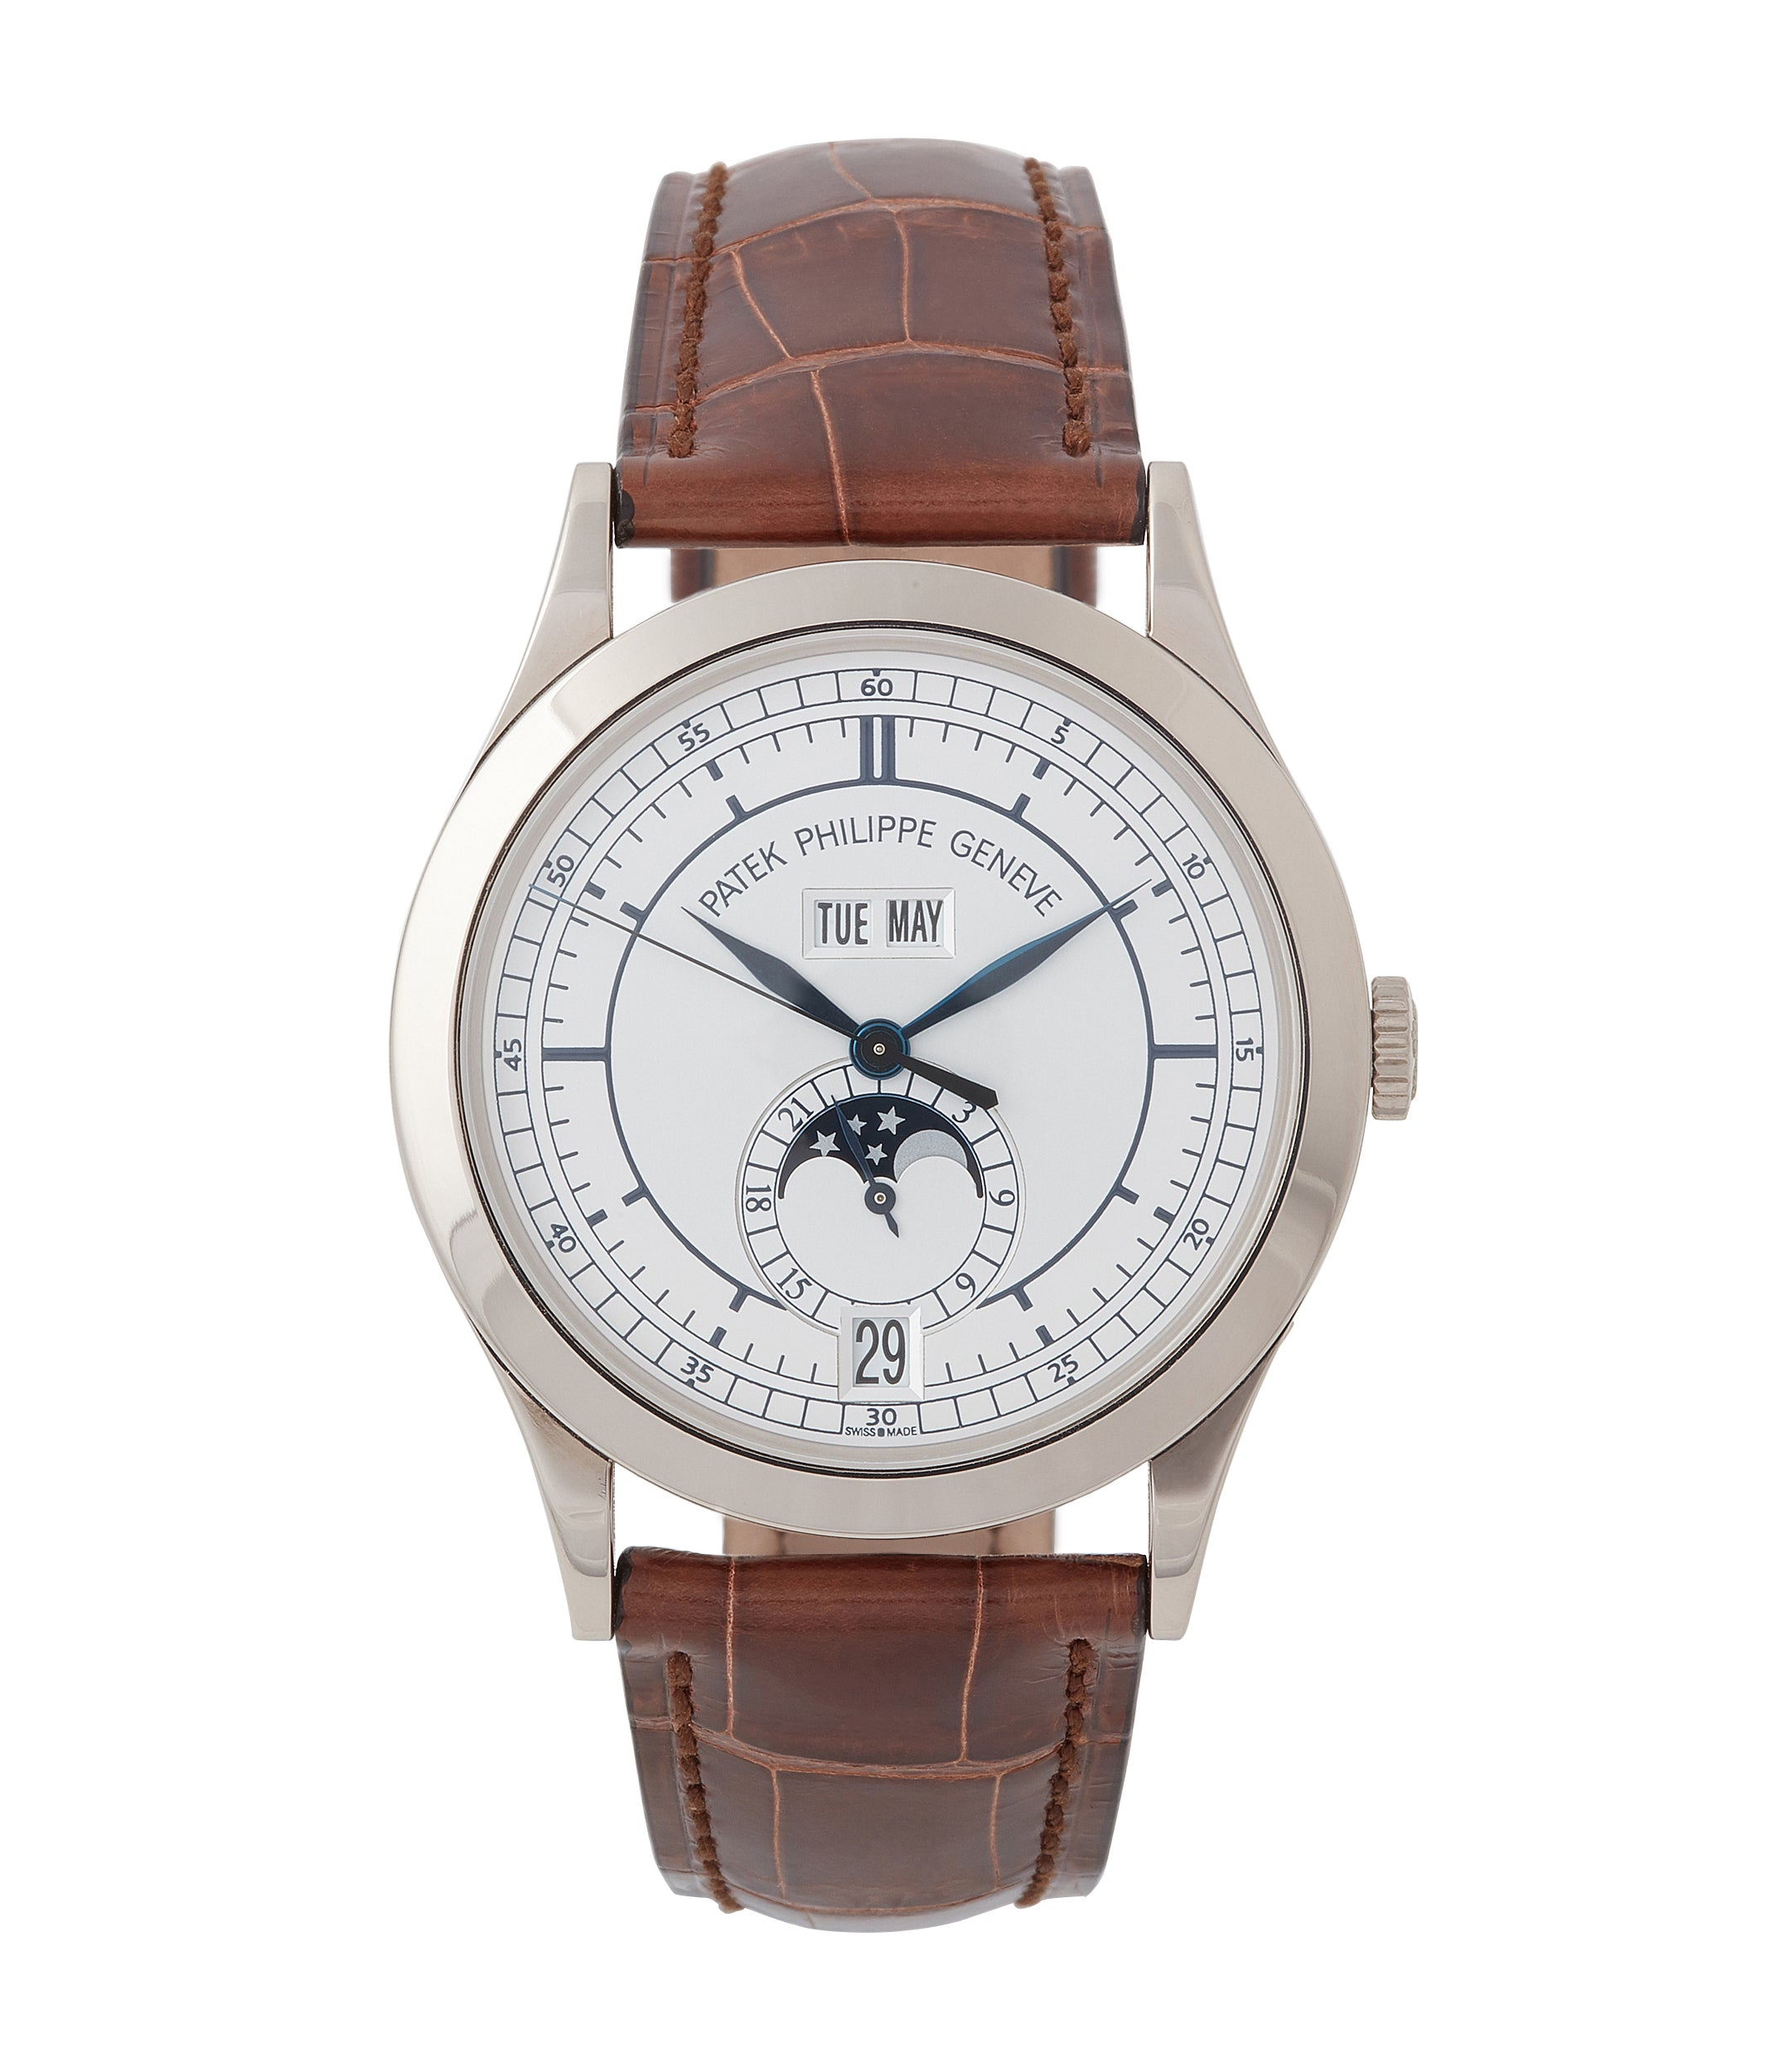 buy Patek Philippe 5396G-001 Annual Calendar pre-owned rare white gold dress watch for sale online at A Collected Man London UK specialist of rare watches